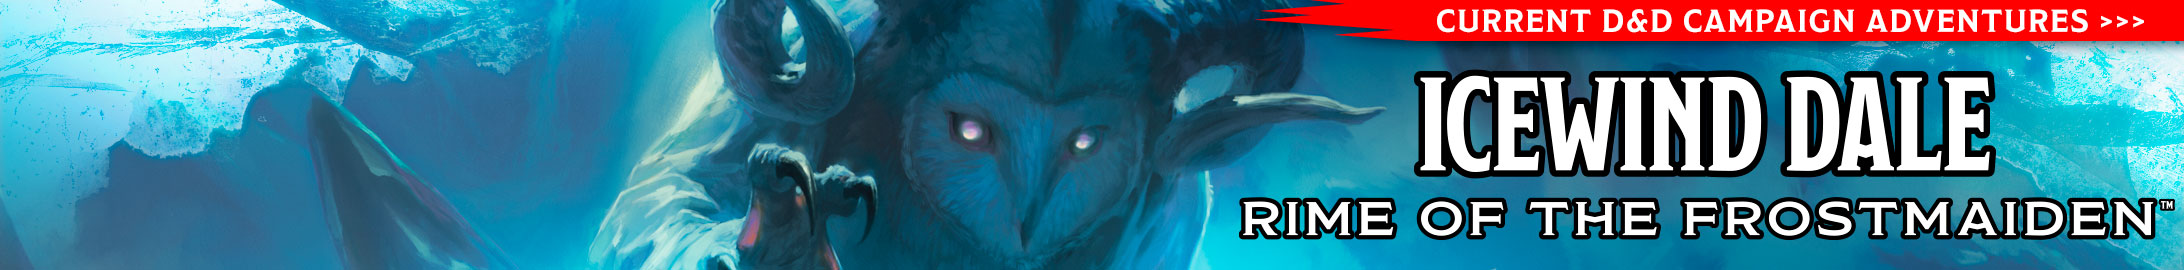 Current D&D Campaign Adventures - Icewind Dale: Rime of the Frostmaiden